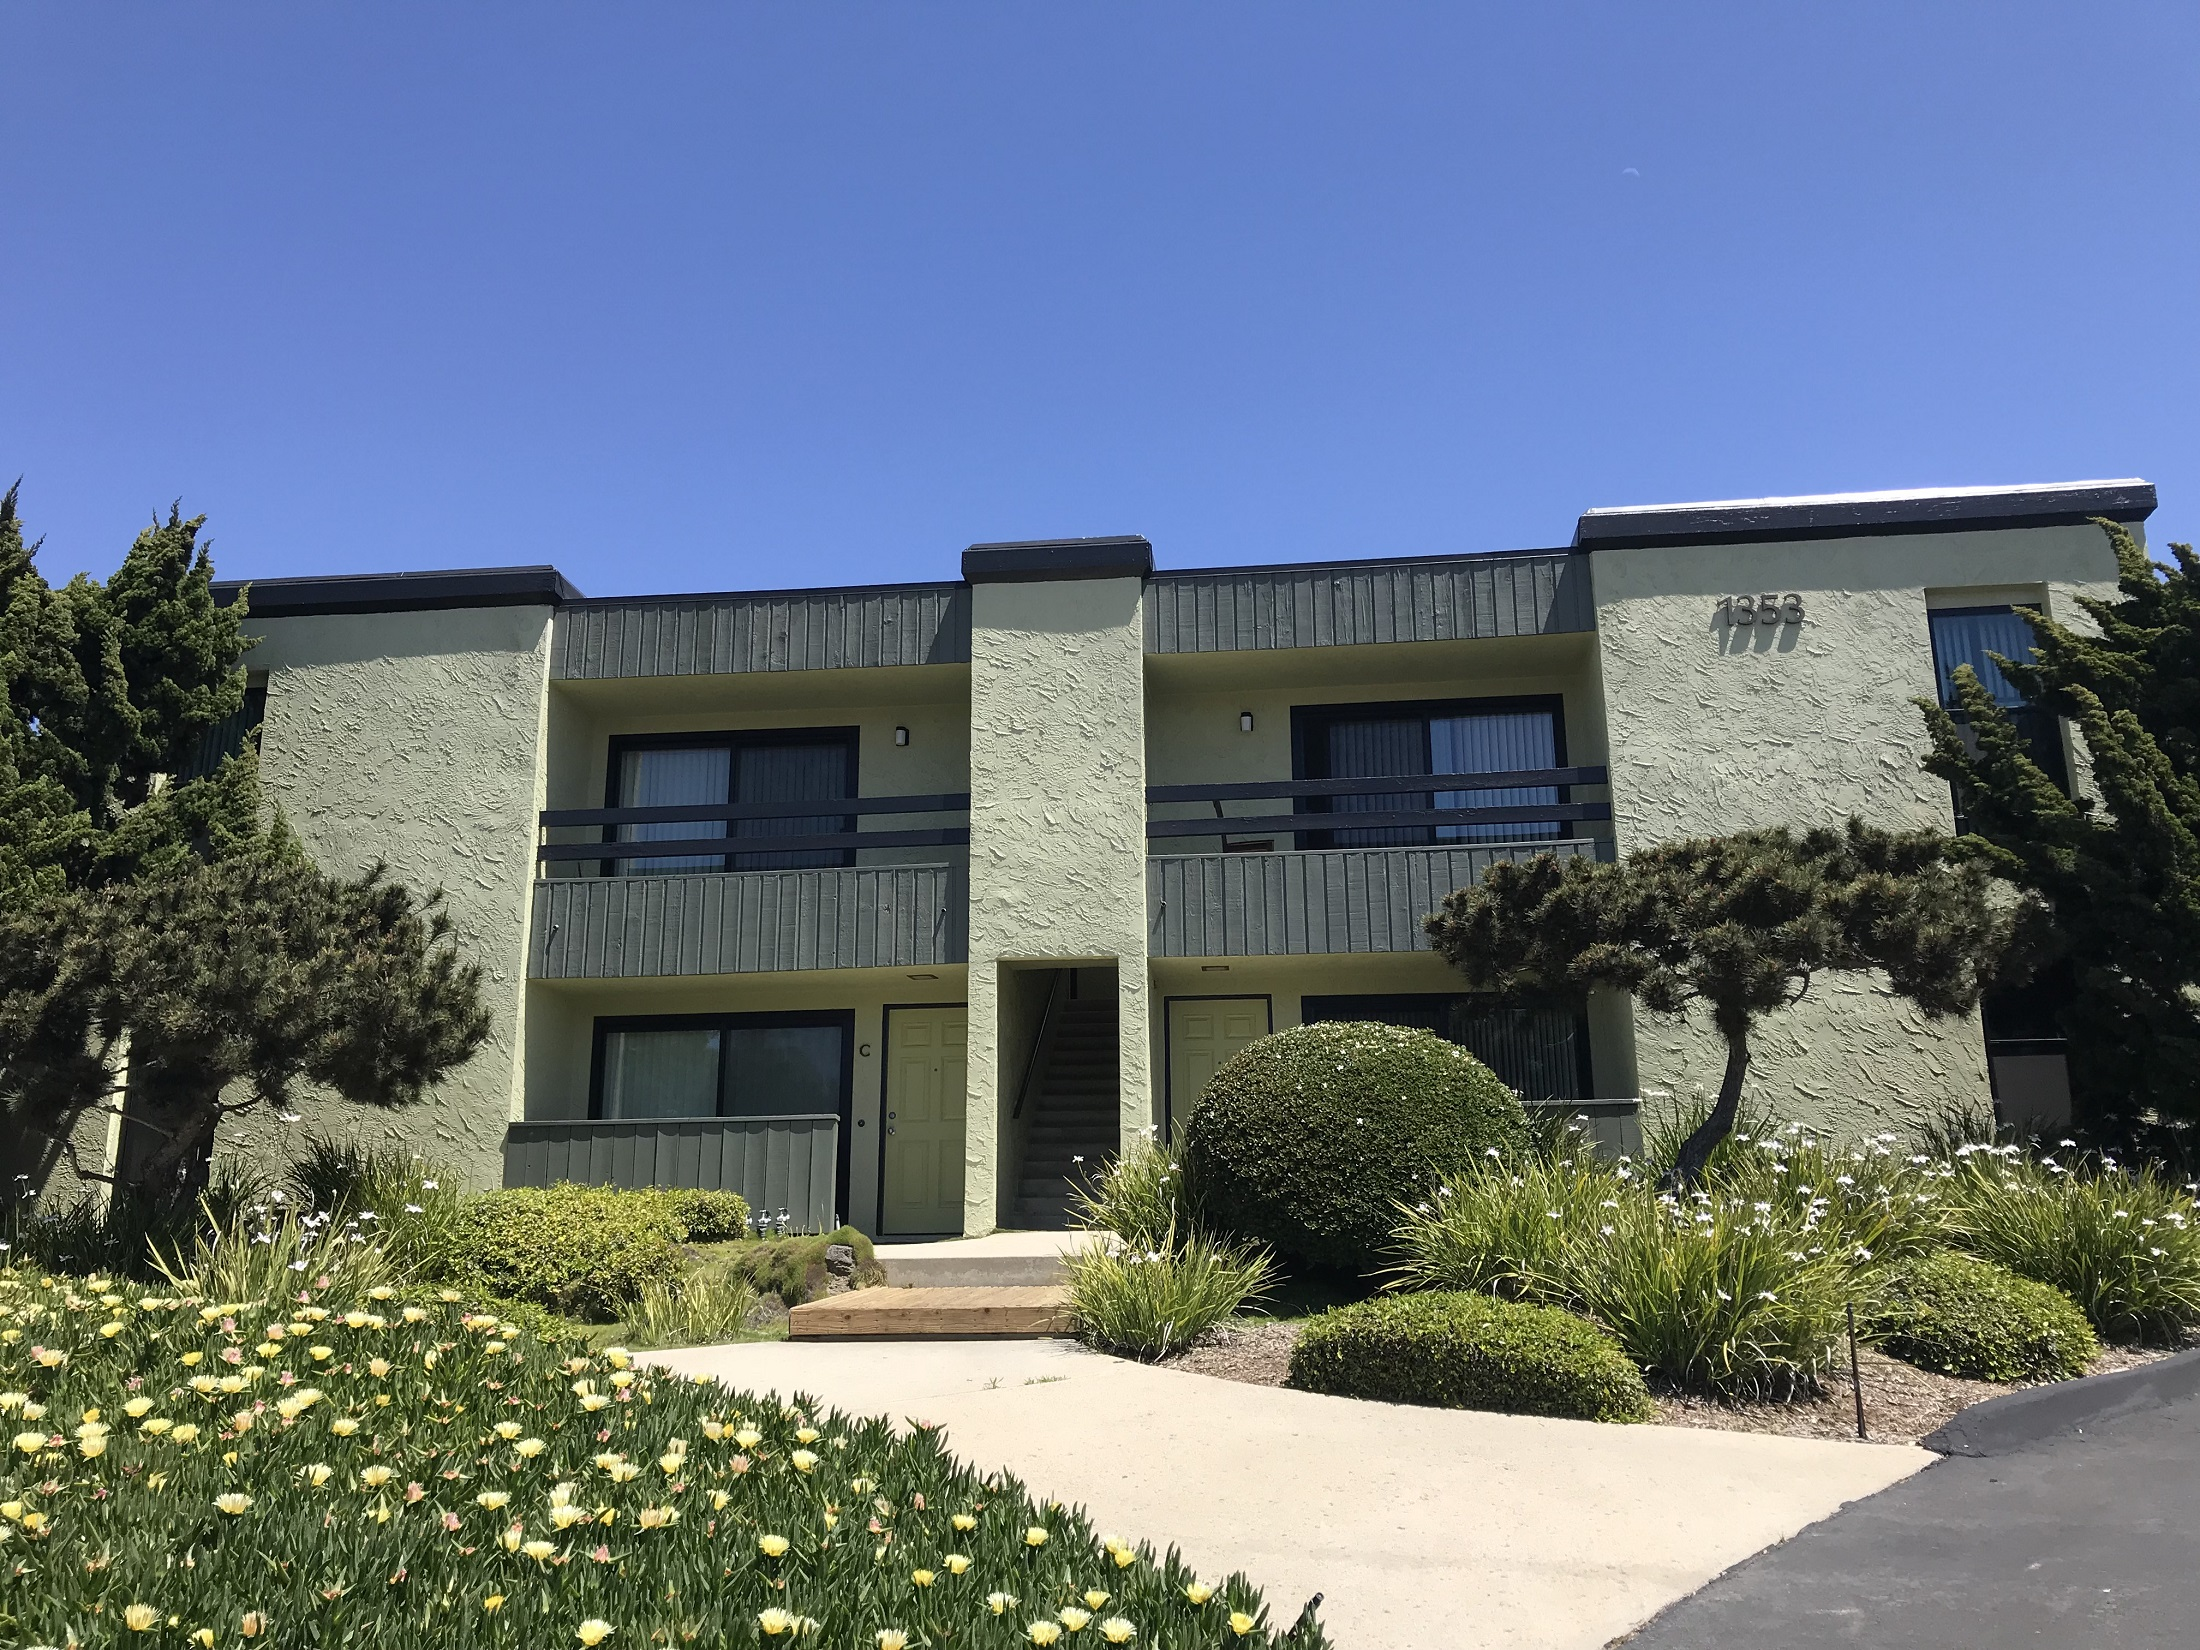 Encinitas apartment buildings sold for 10m san diego business journal - Apartment buildings san diego ...